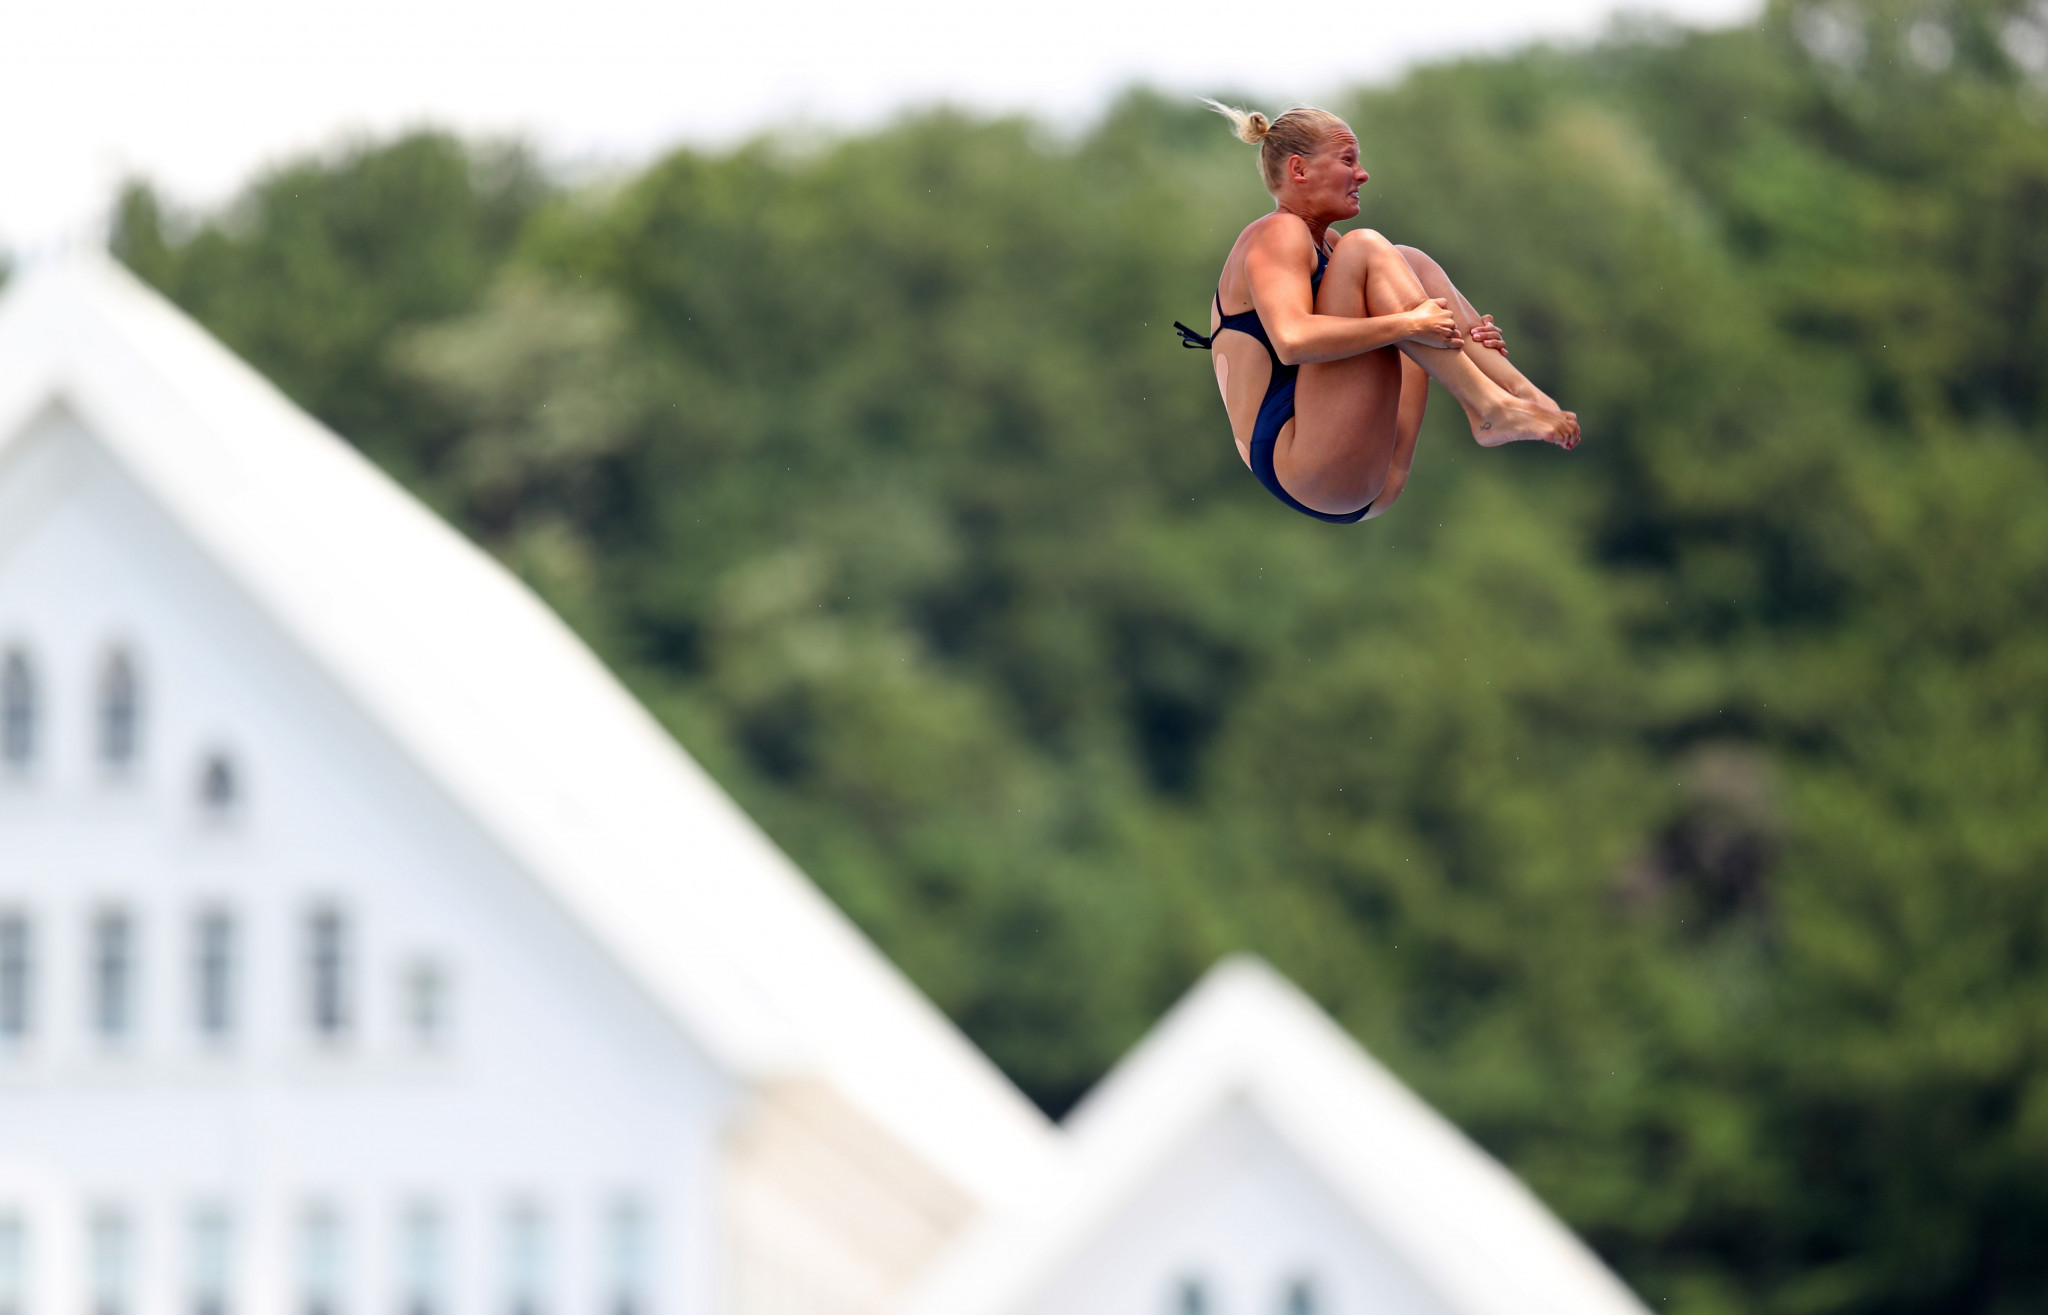 Rhiannan Iffland won gold in the women's high diving  ©Getty Images